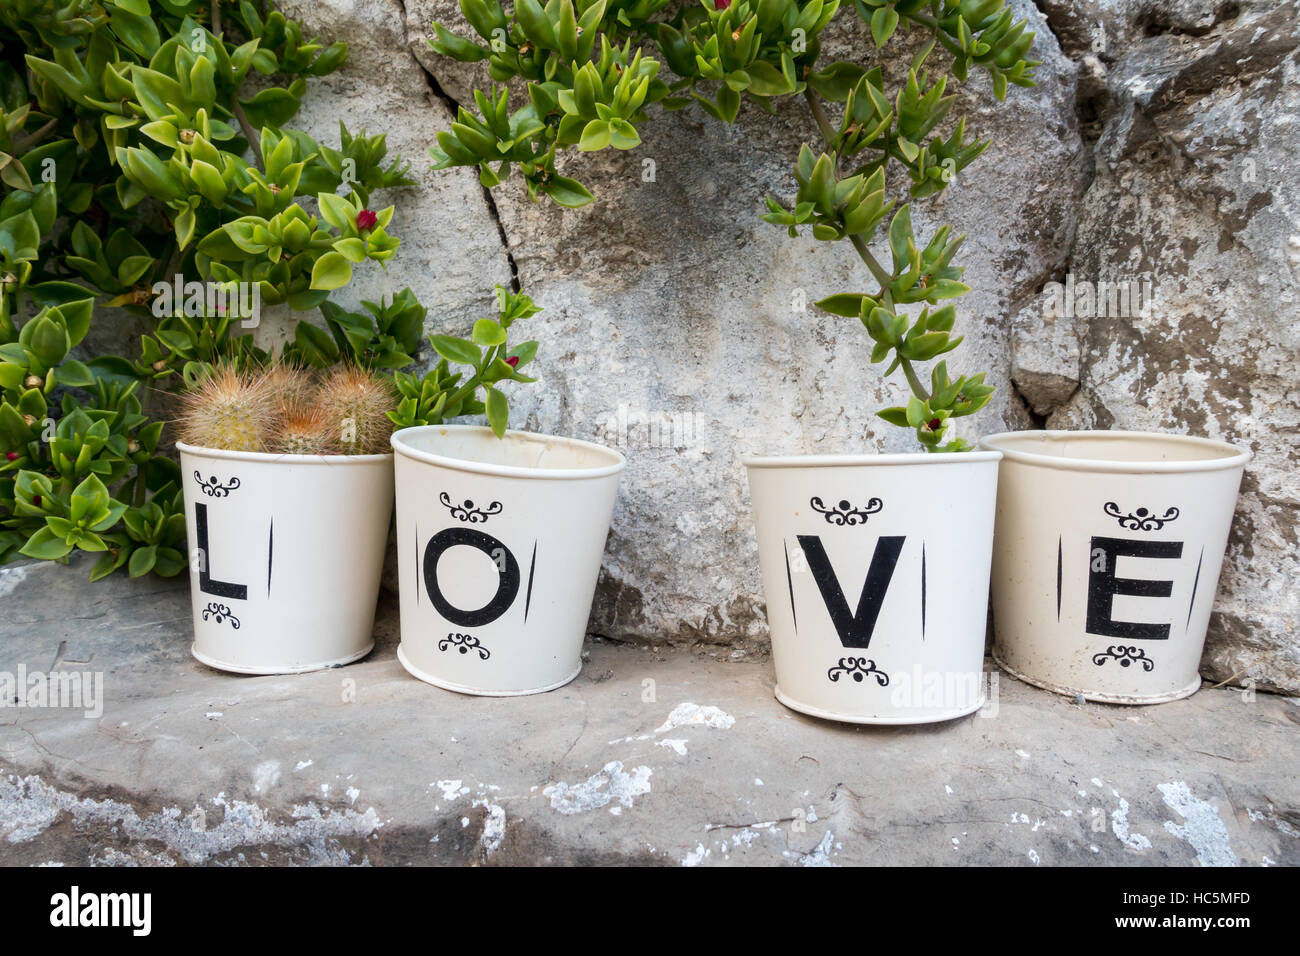 tins or cans spelling the word 'love' - Stock Image